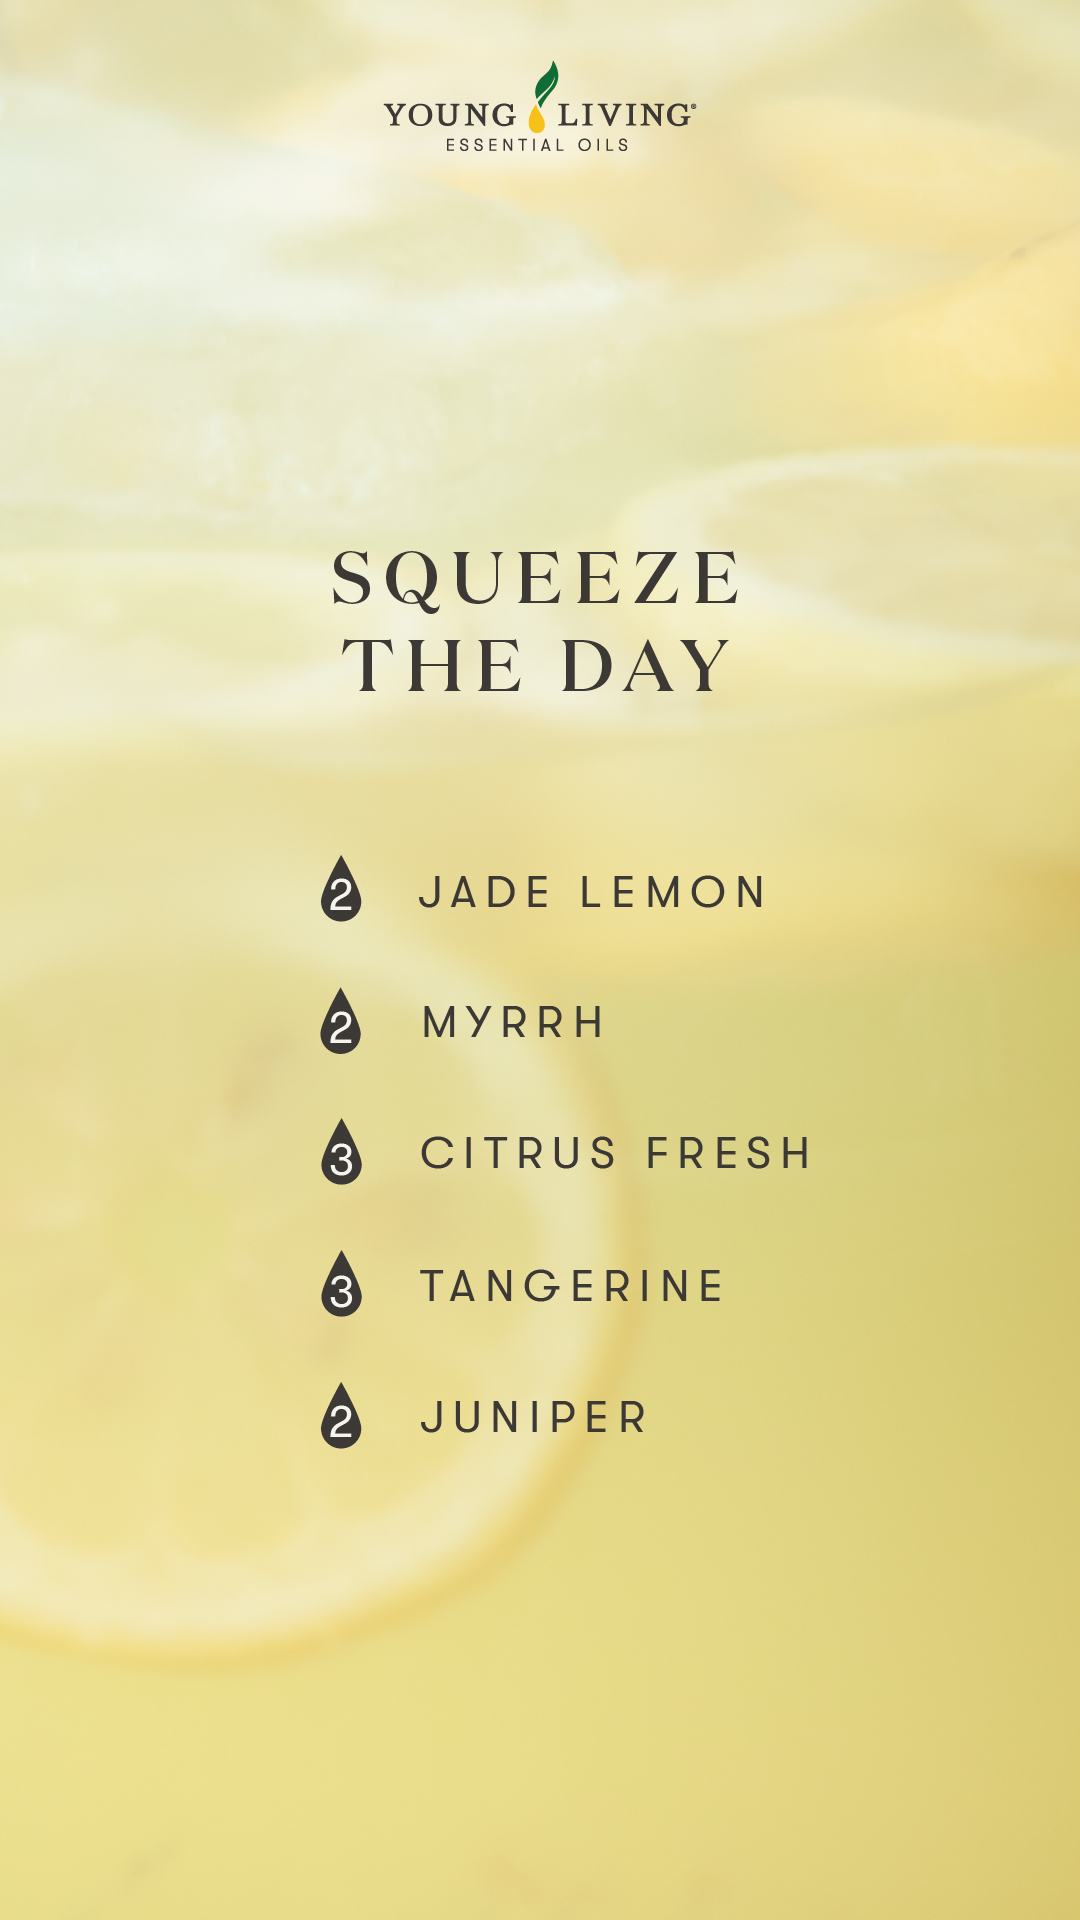 Squeeze the day diffuser blend